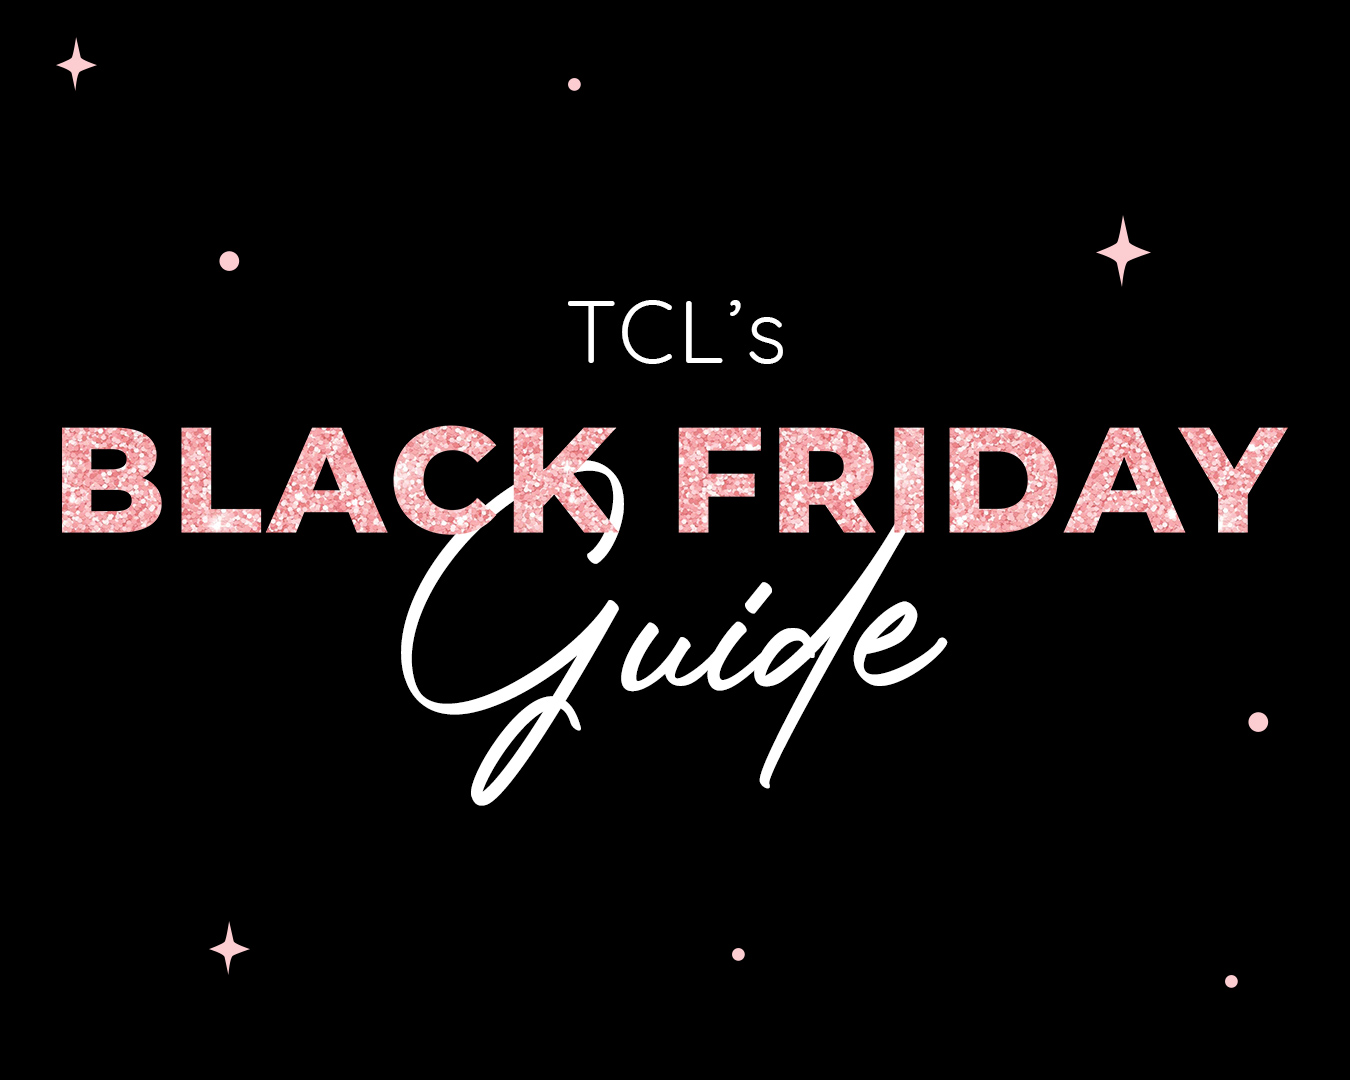 Black Friday SALE Guide